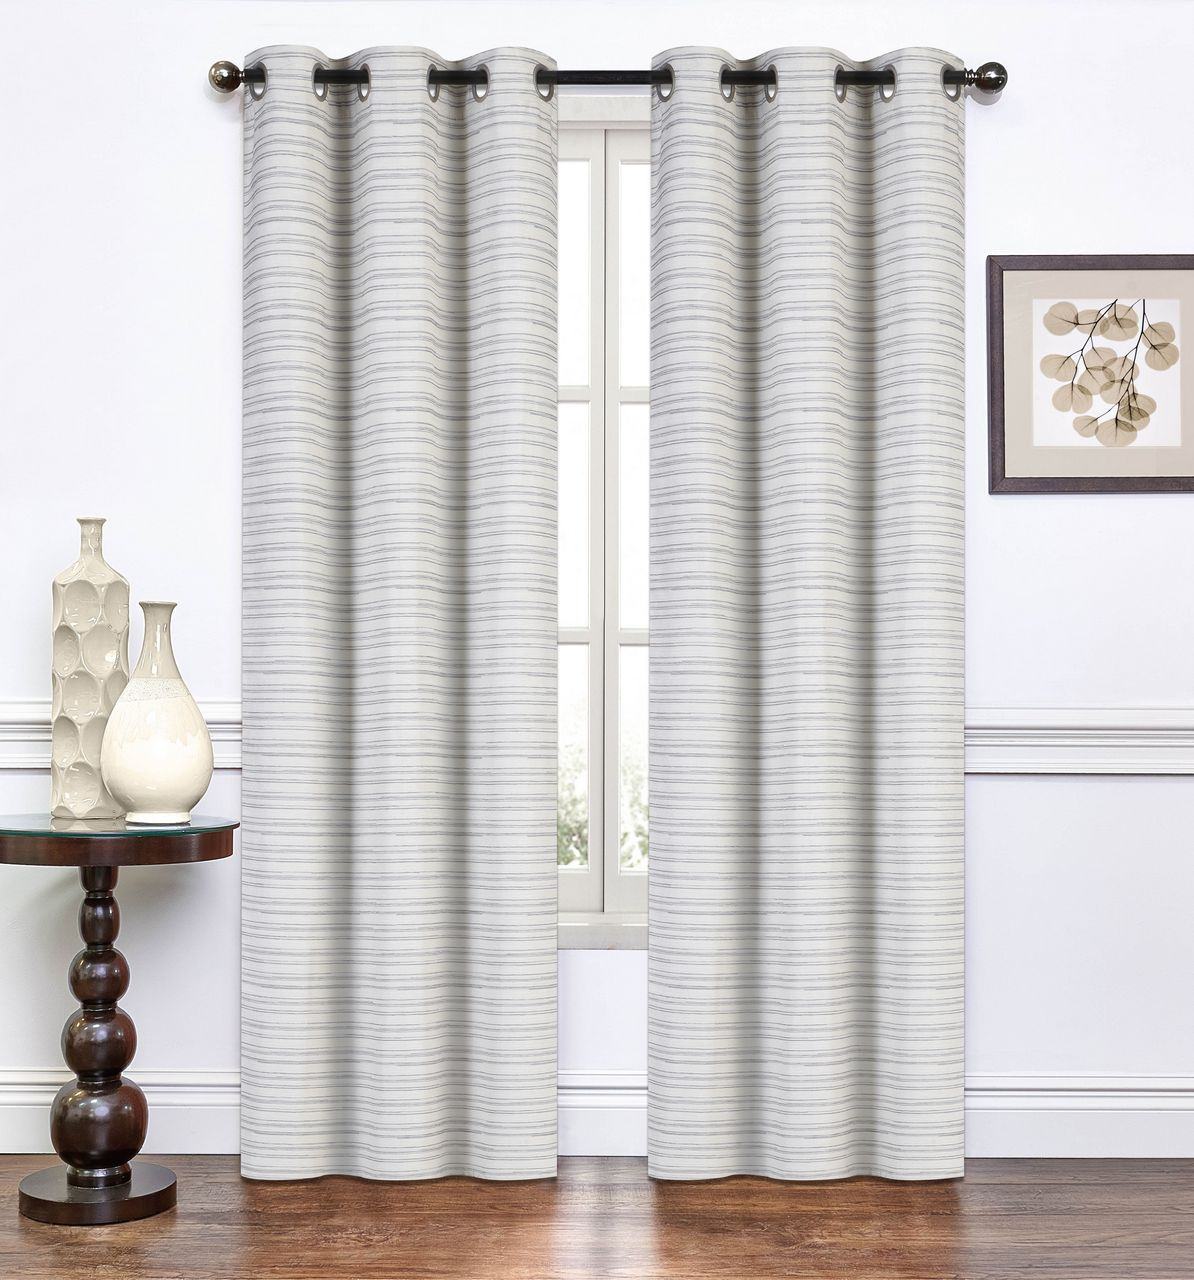 pink curtains cheap and curtain shocking popular tfast of best light ideas sheer trends u panels